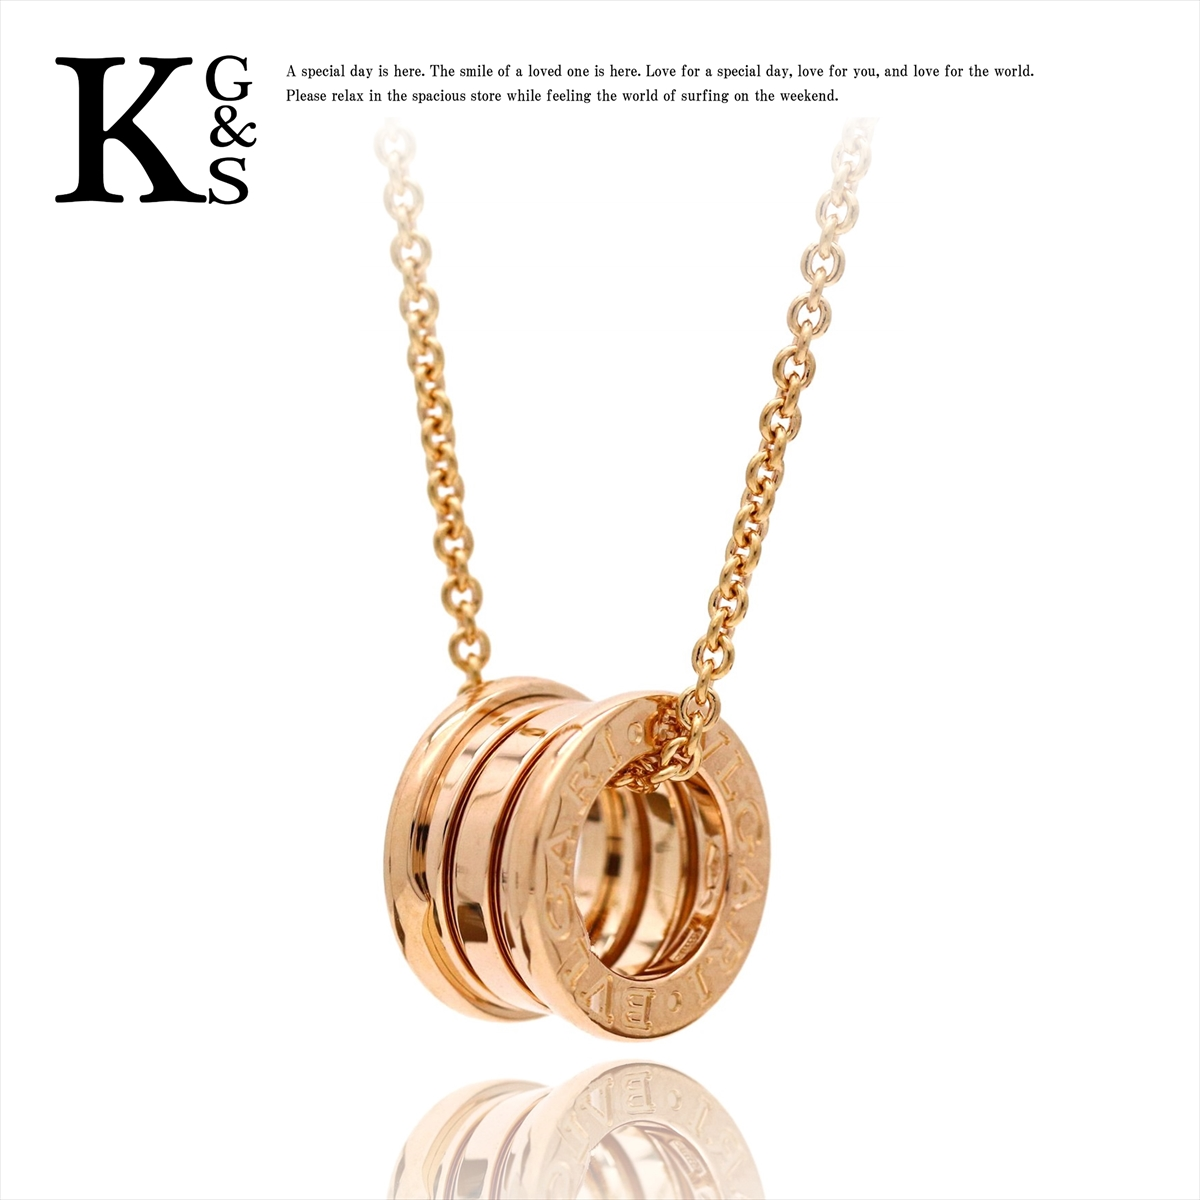 8ca76924 karyon: Bulgari /BVLGARI B.zero1 B zero one pendant / Lady's jewelry  necklace / K18PG pink gold / chain 38-45cm / 335924 CL852407 | Rakuten  Global Market